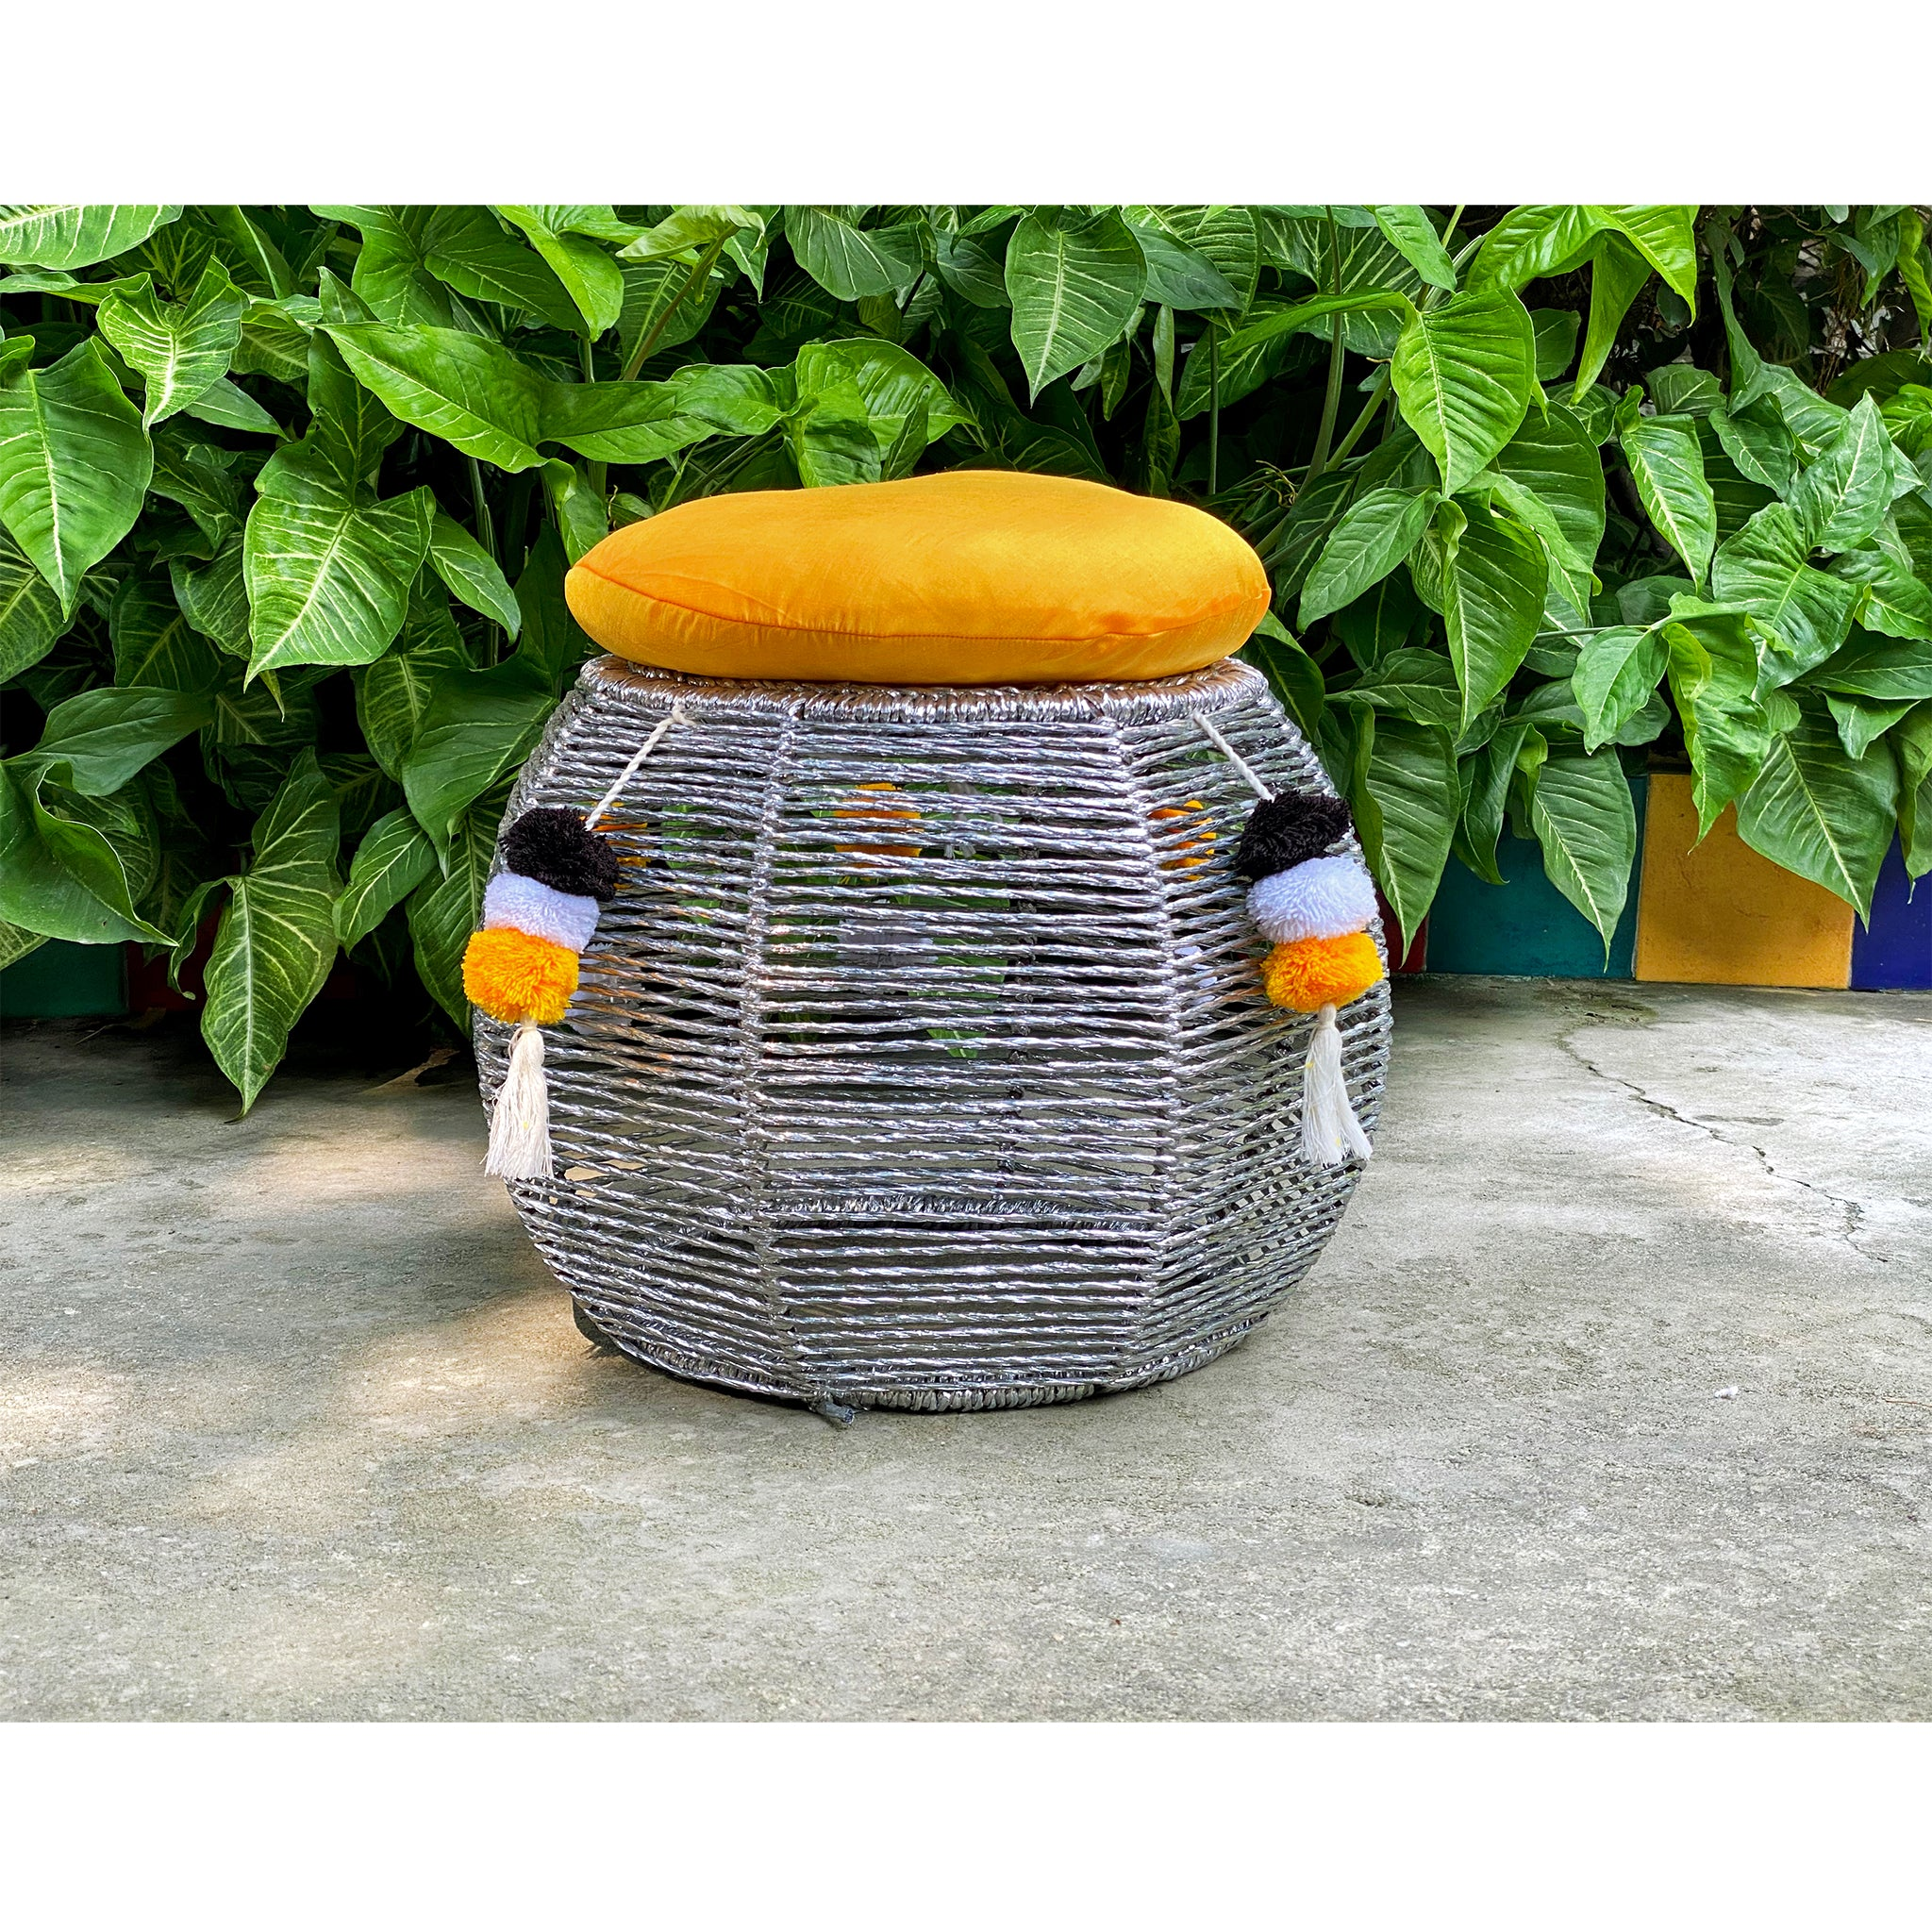 Sunshine Bamboo Seats (Single Piece)